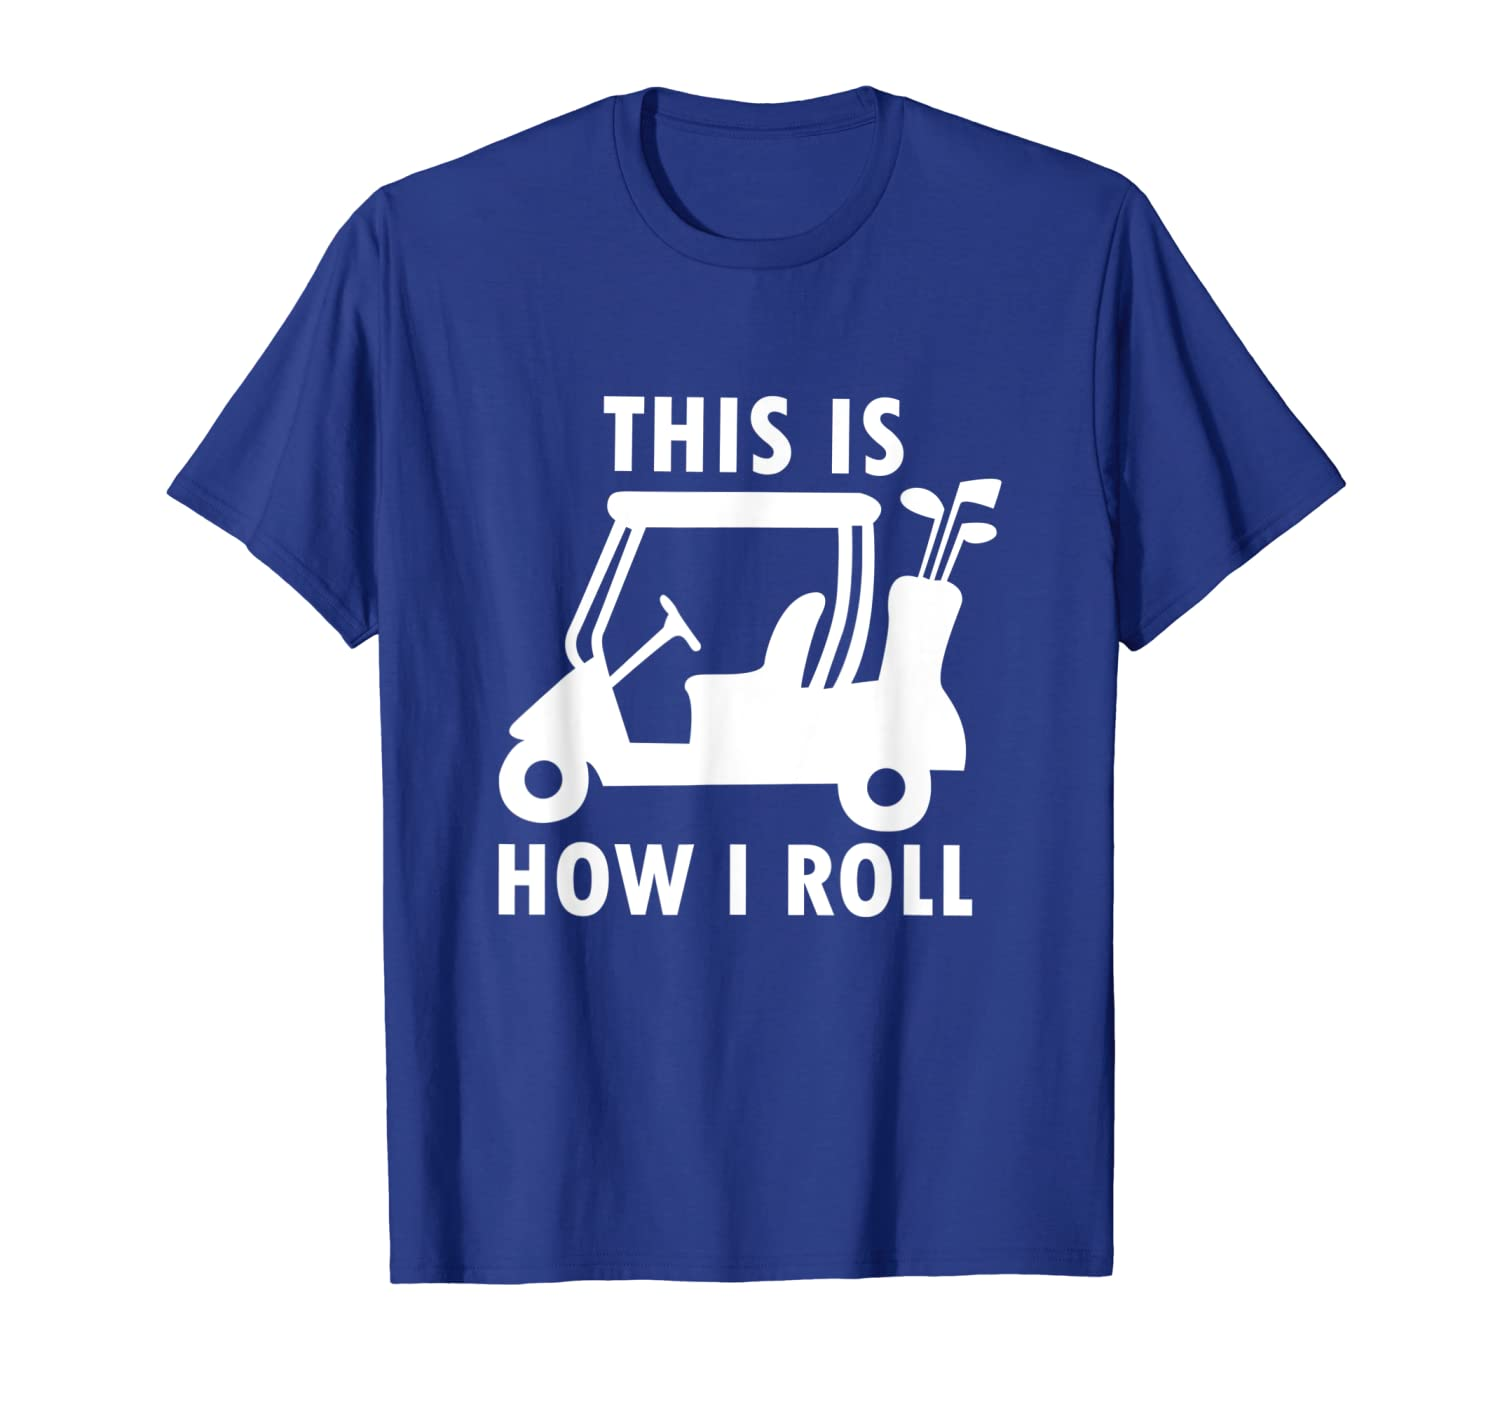 This Is How I Roll Funny Humor Golf Shirt Vintage Golf Tee-TH